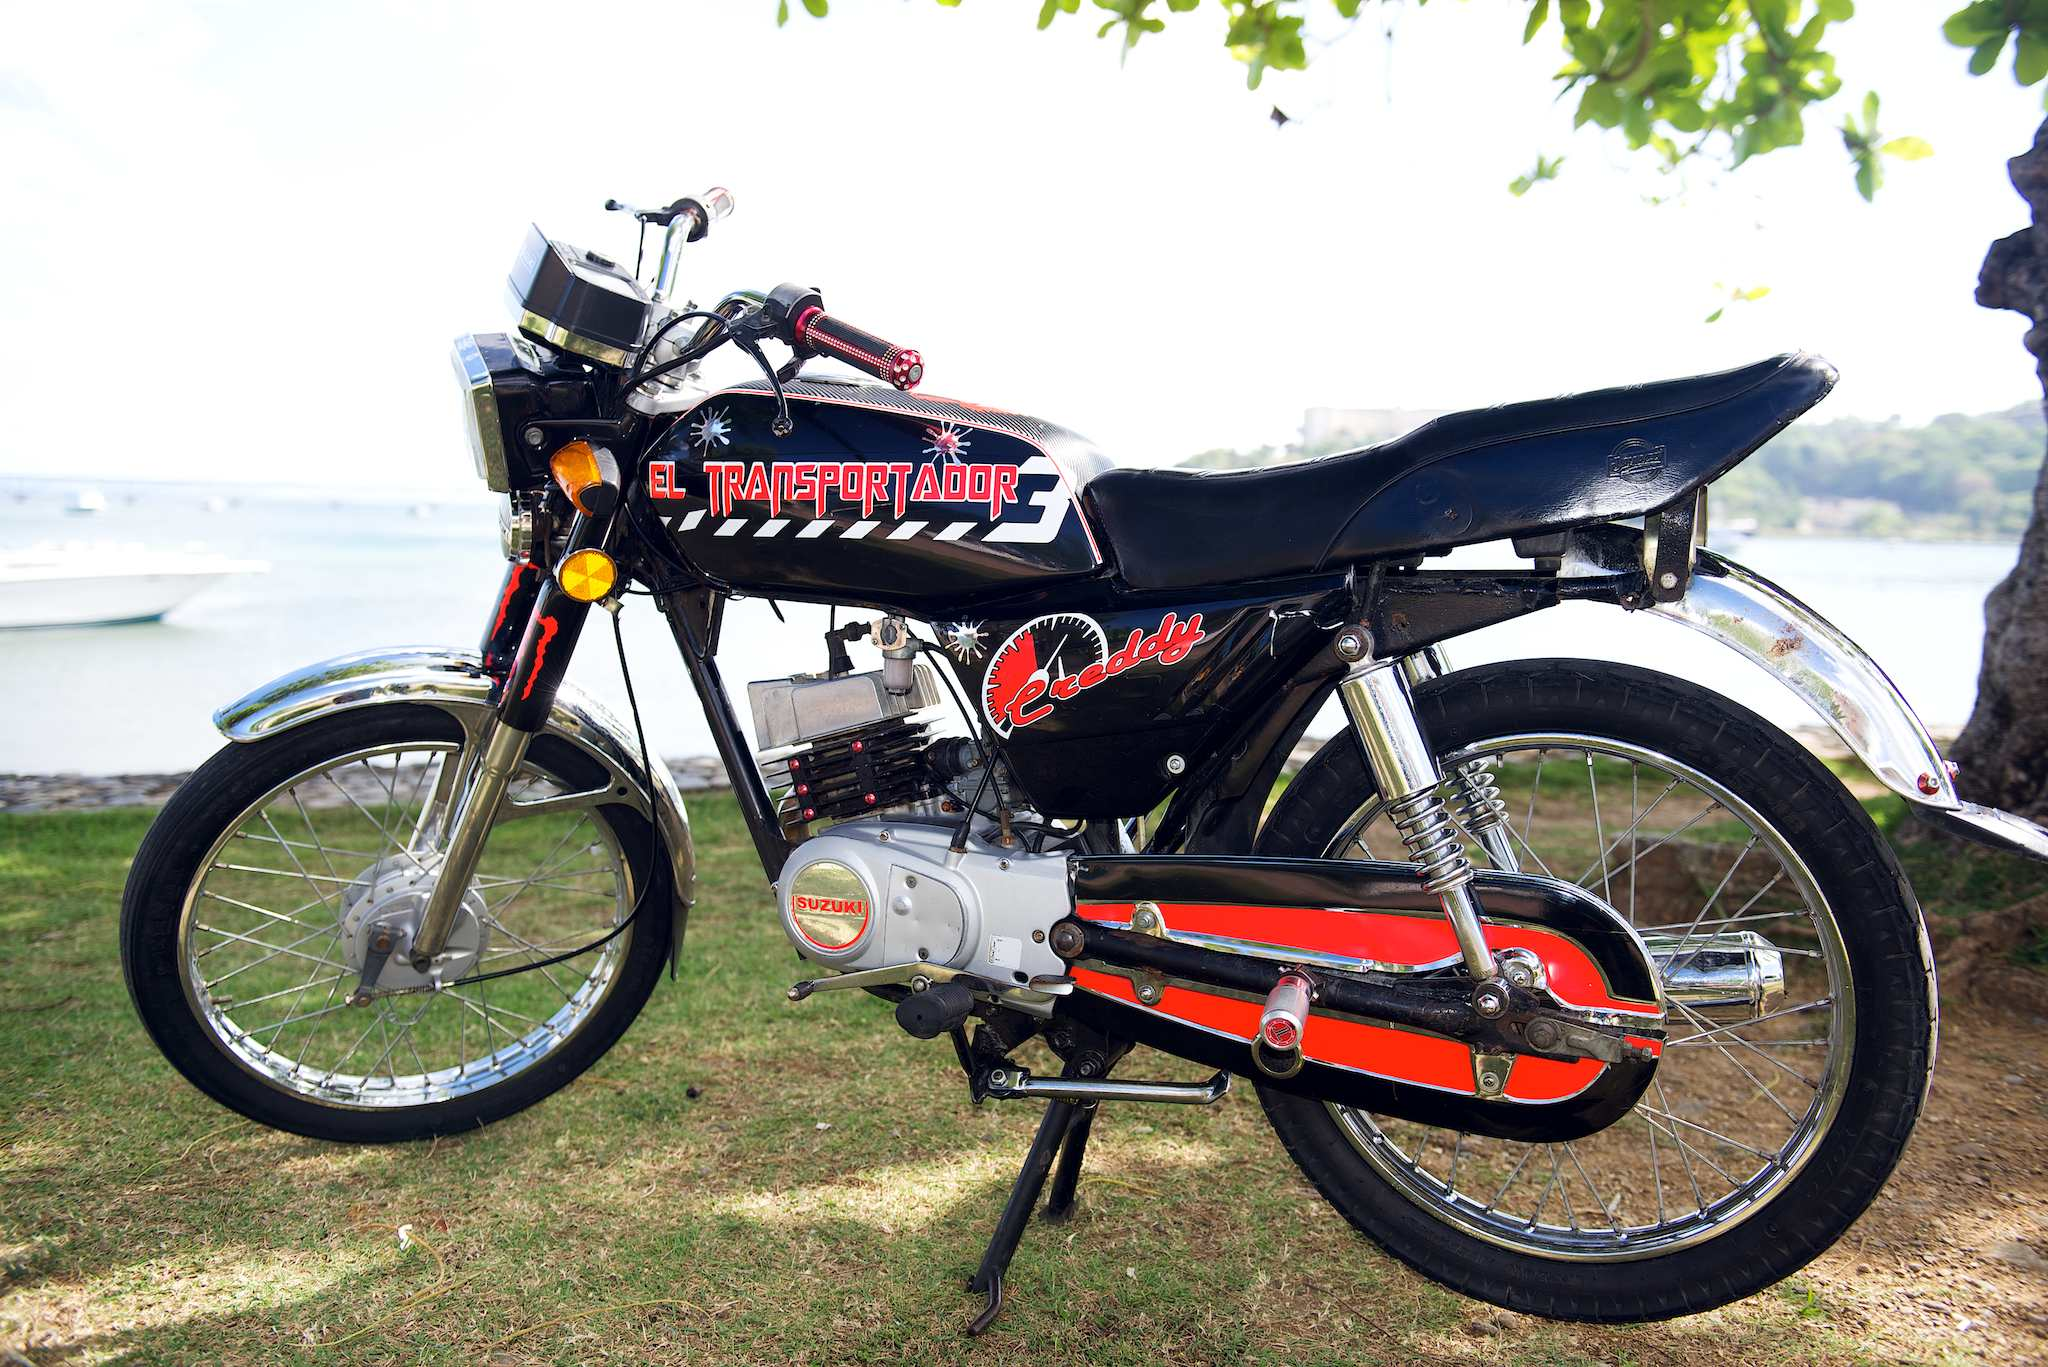 Motoconcho: Photo of the Day